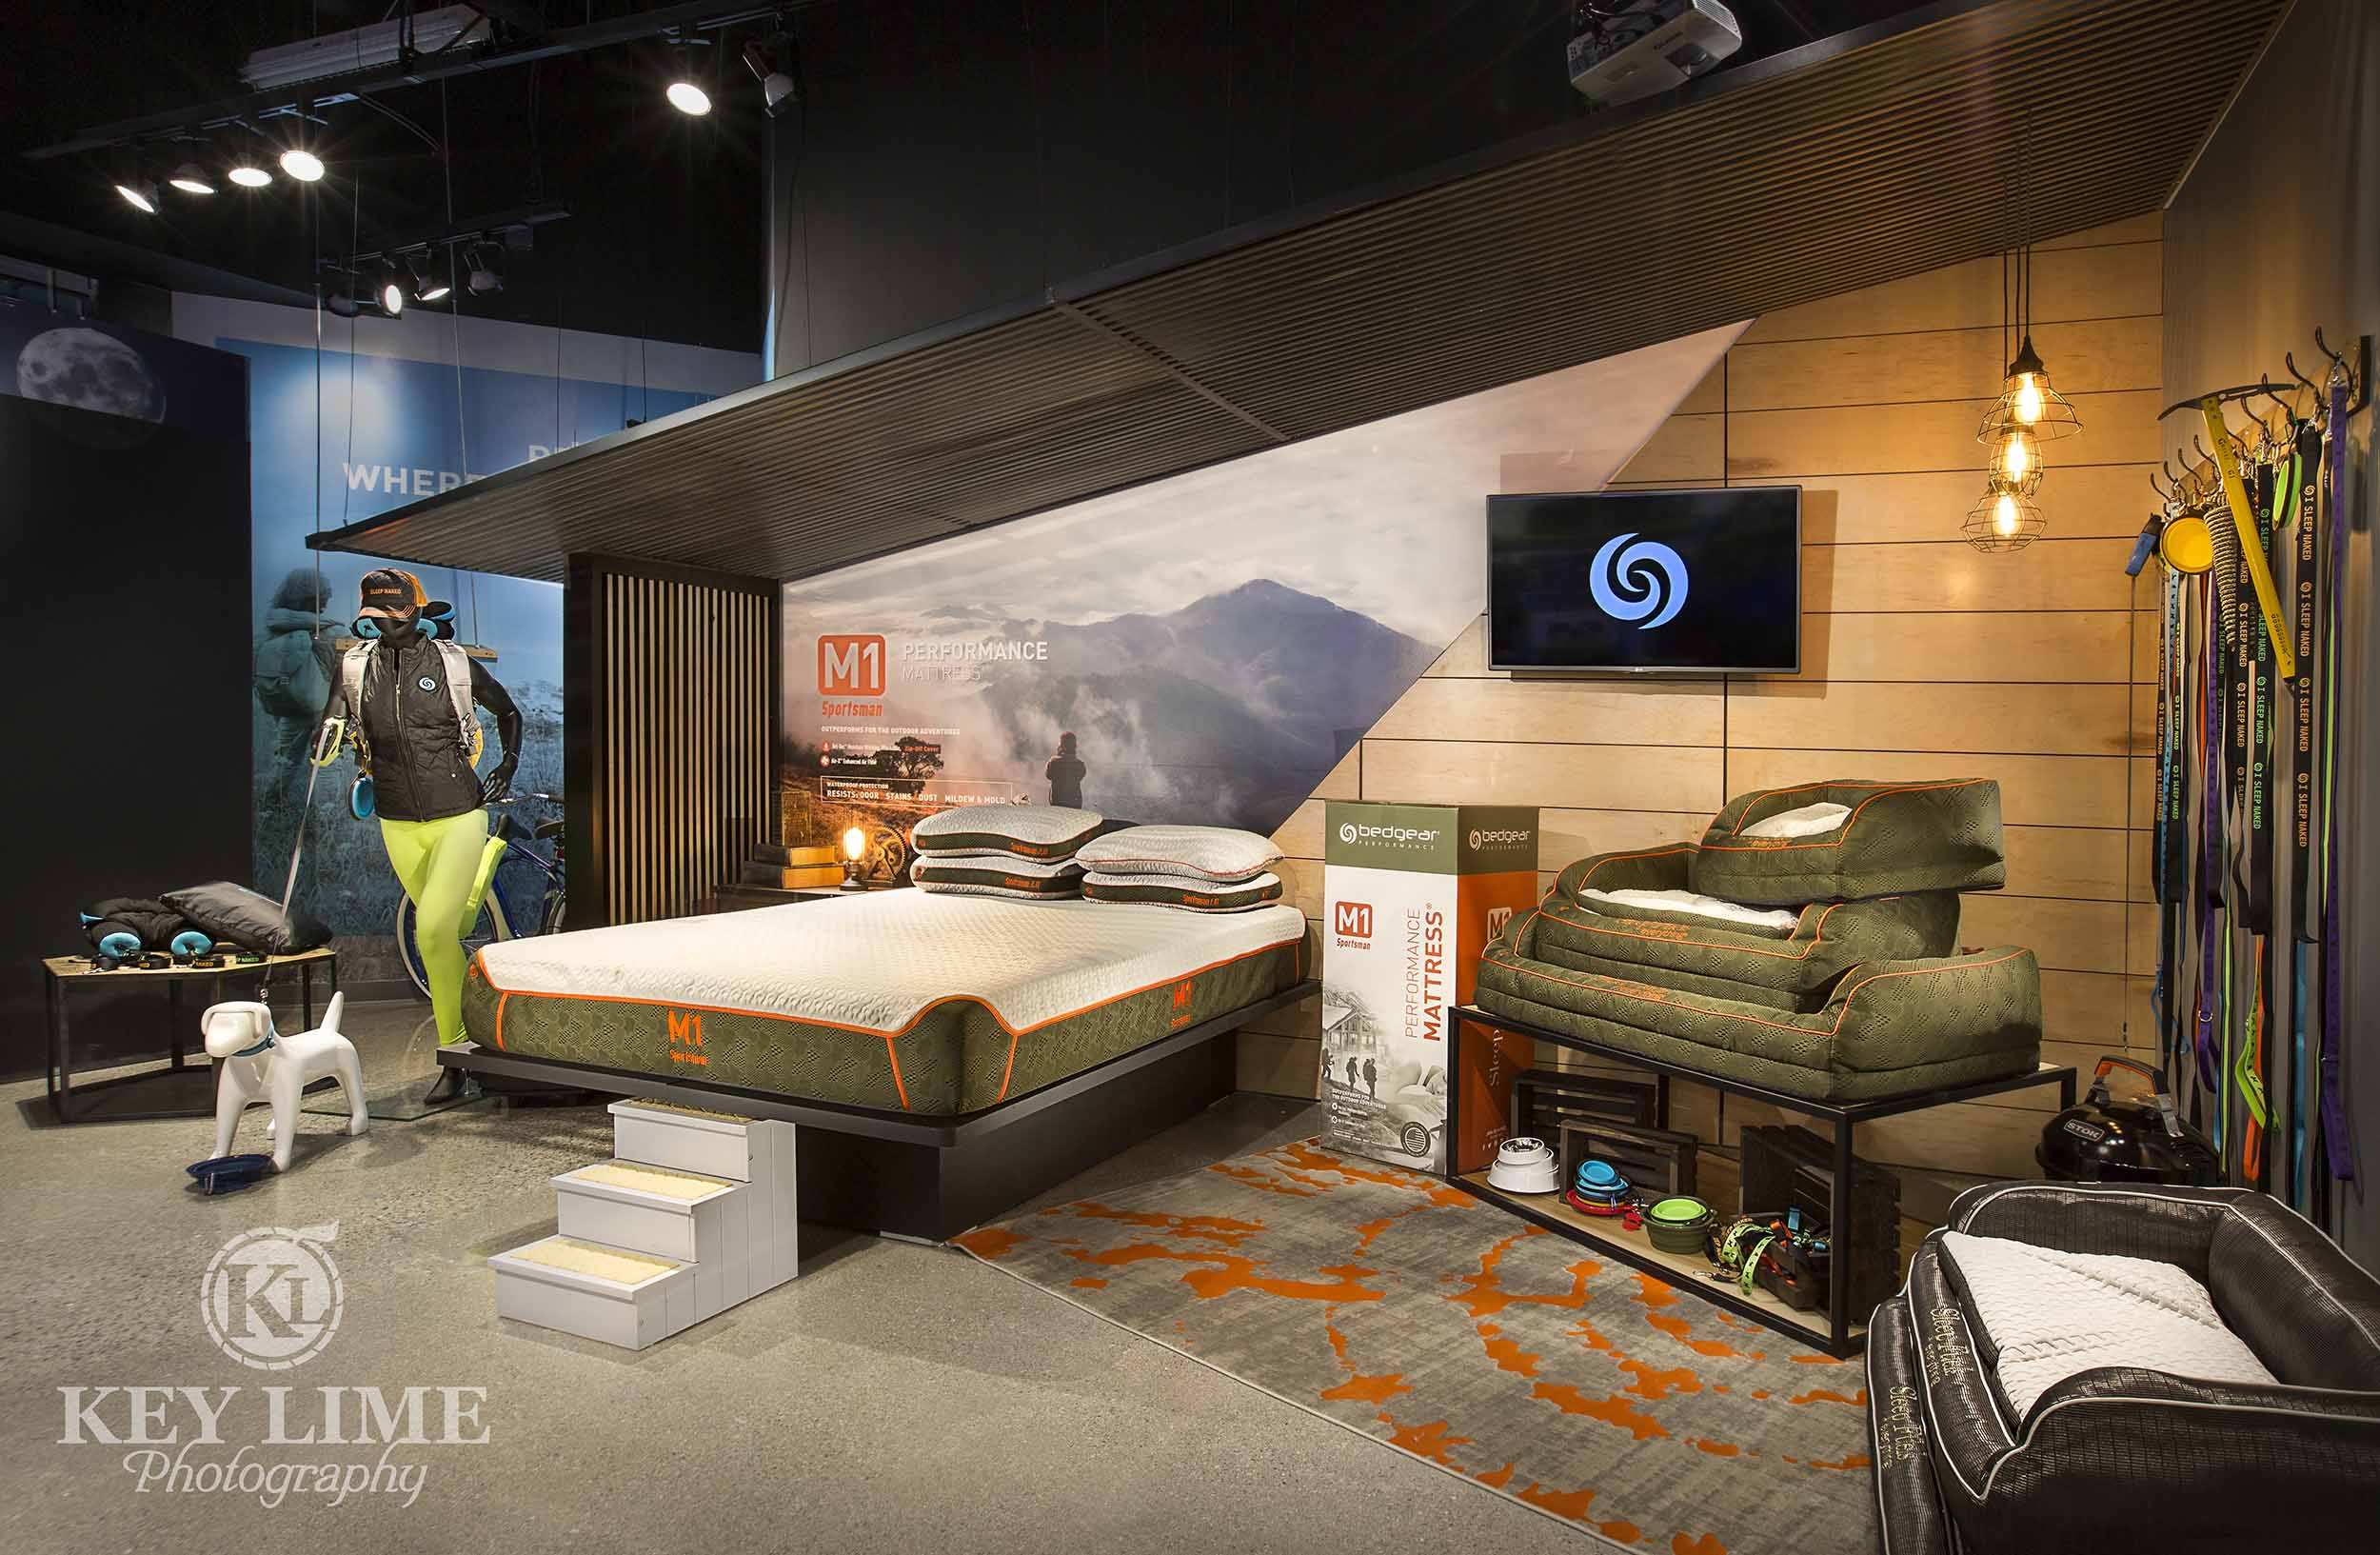 Las Vegas market trade show photographer image of outdoorsy bedding